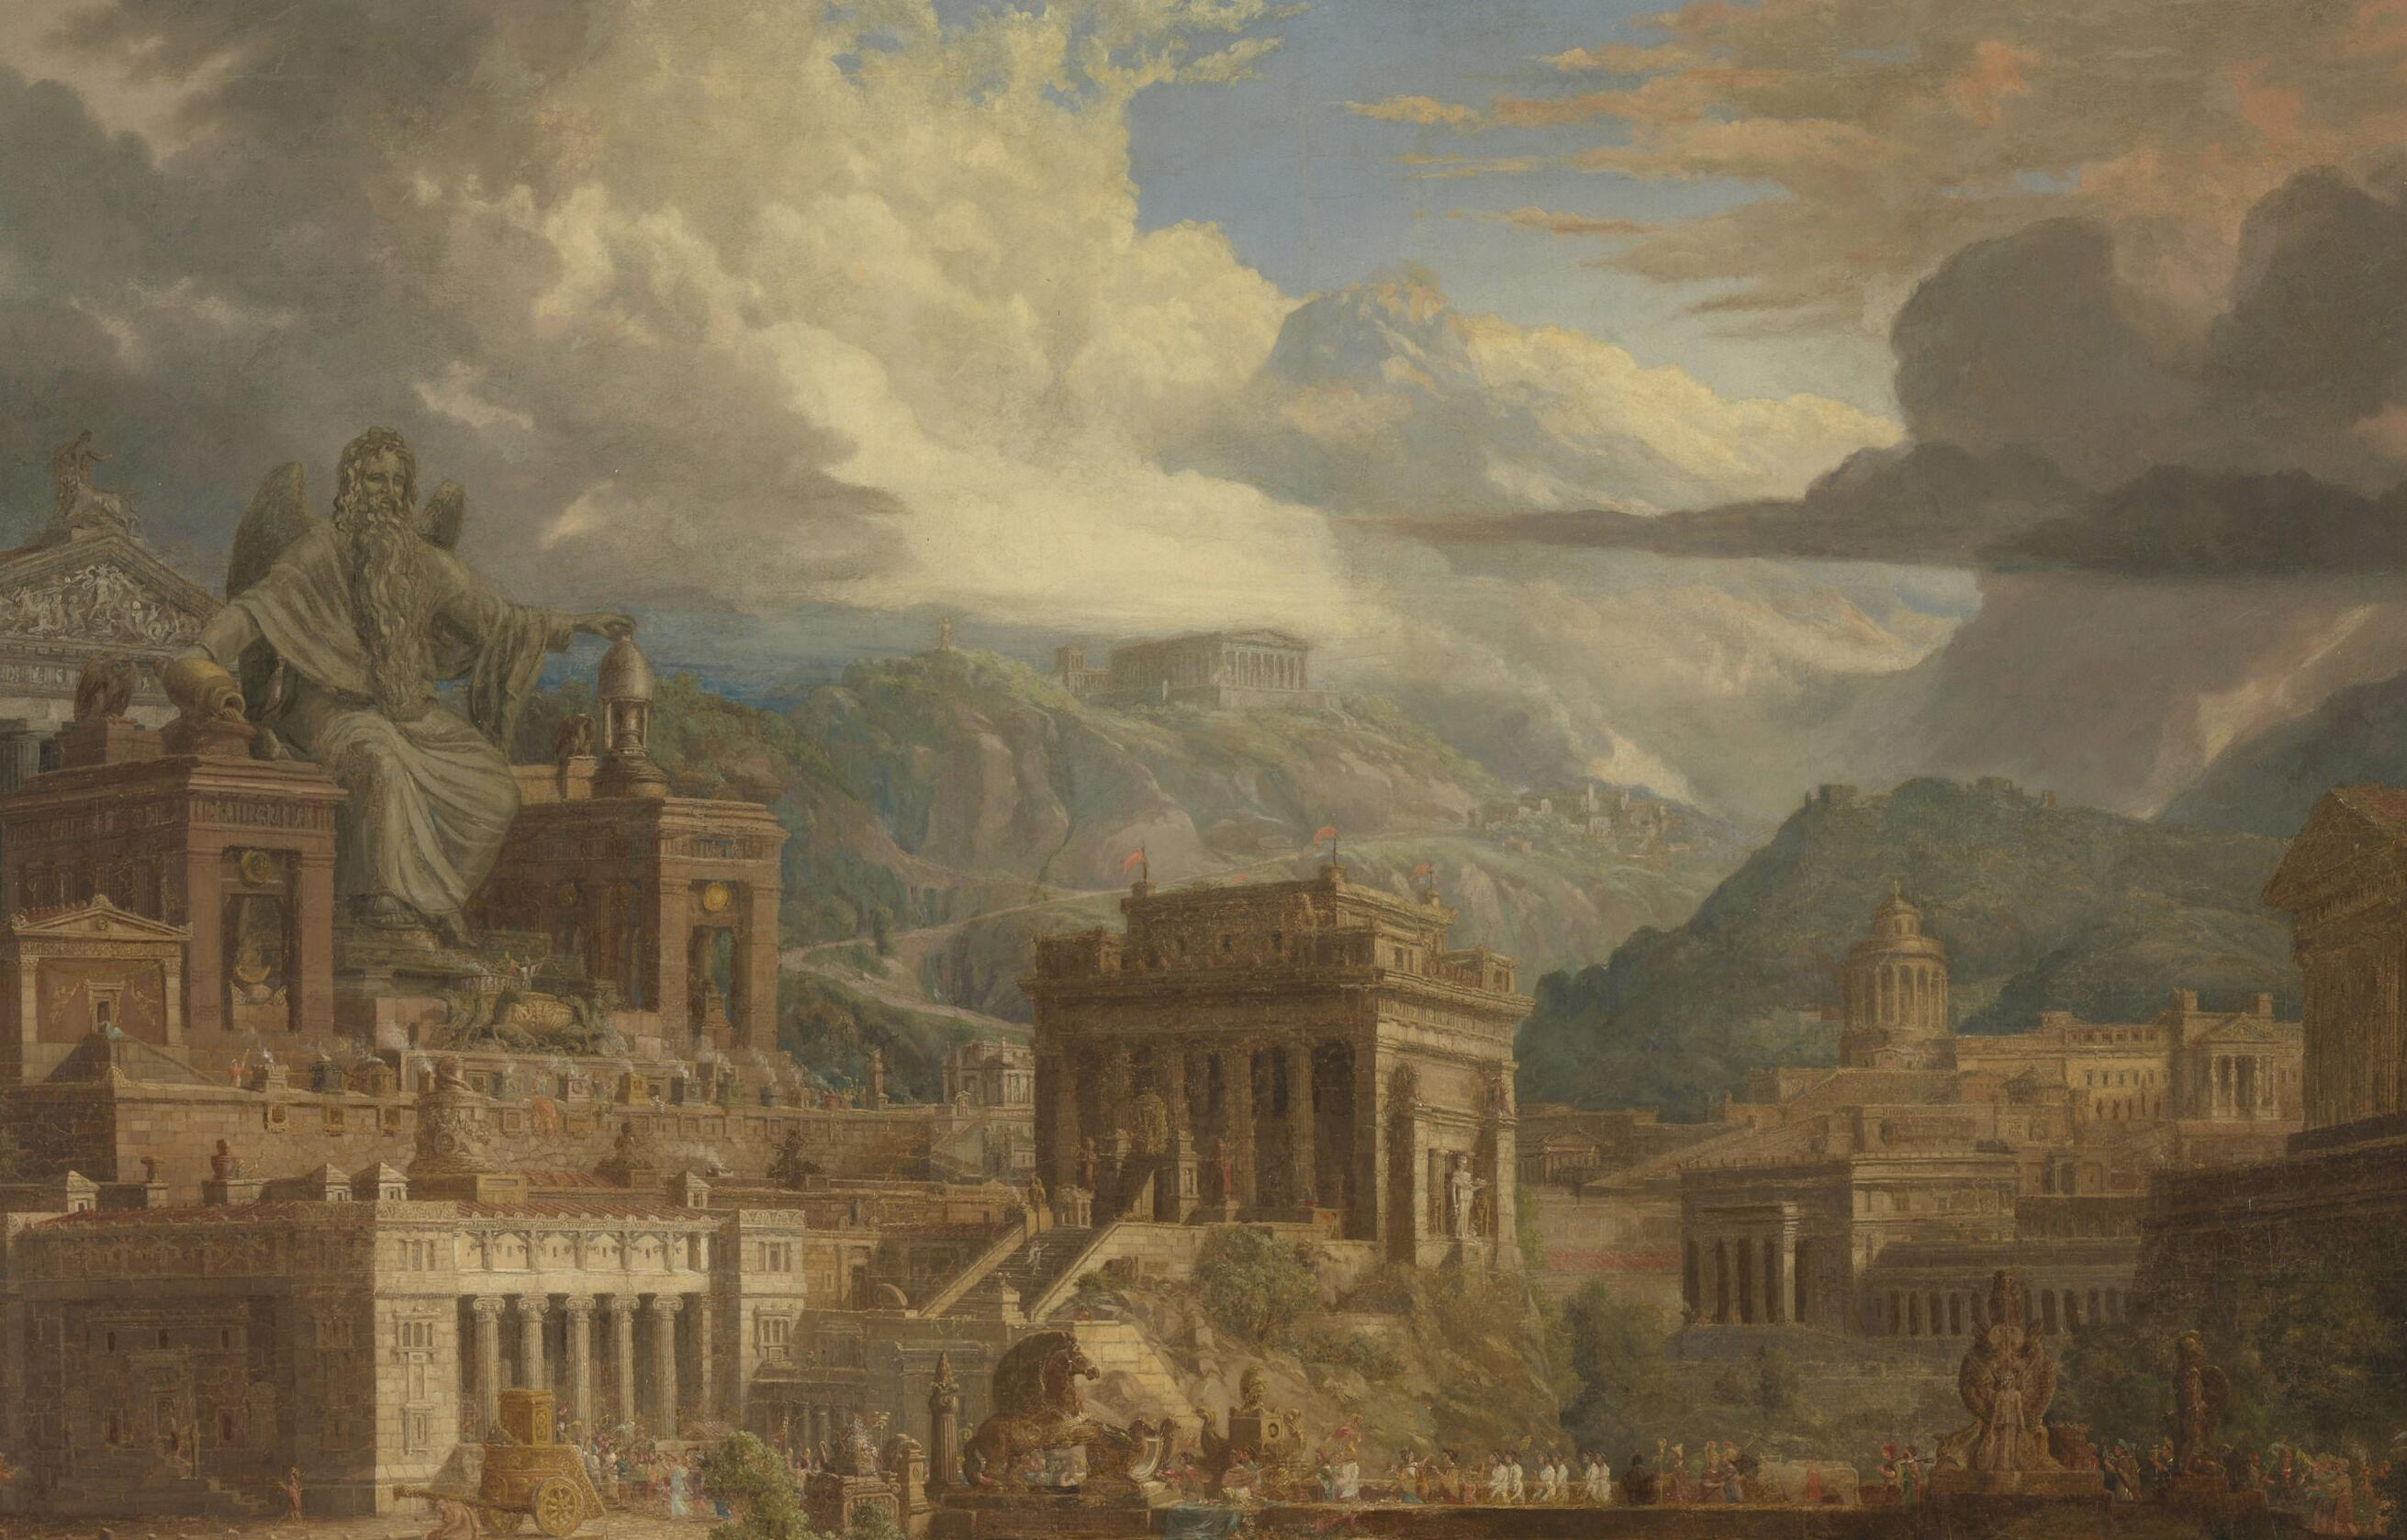 Joseph Michael Gandy, <i>Jupiter Pluvius</i>, 1819, oil on canvas, 188.5 x 228 x 14.5 cm. Tate (L03760). Digital image courtesy of Tate  (Creative Commons CC-BY-NC-ND 3.0 Unported).